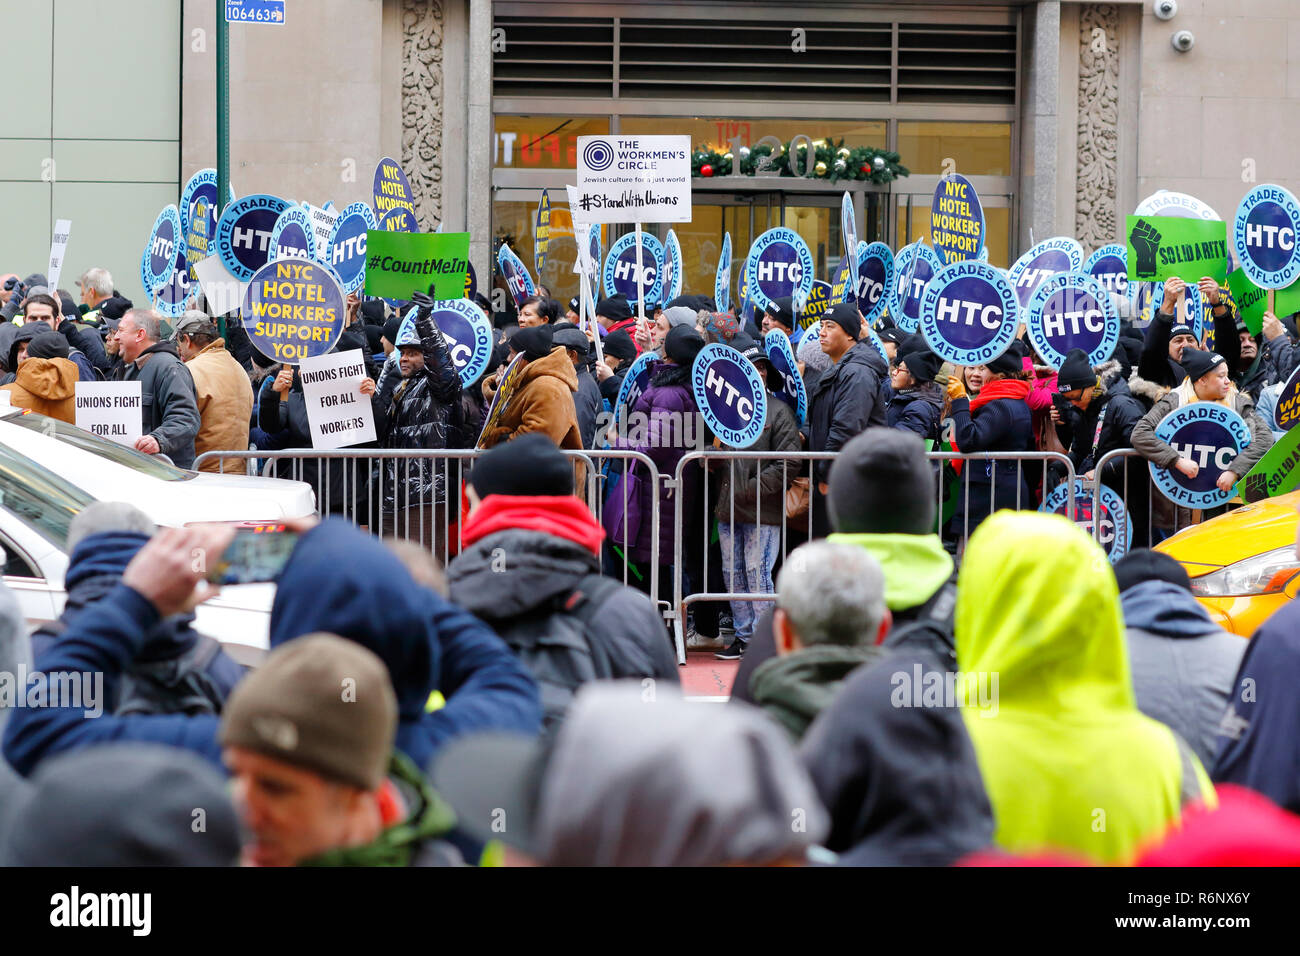 a-union-labor-rallyprotest-outside-charter-spectrum-in-new-york-city-december-5-2018-R6NX6Y.jpg